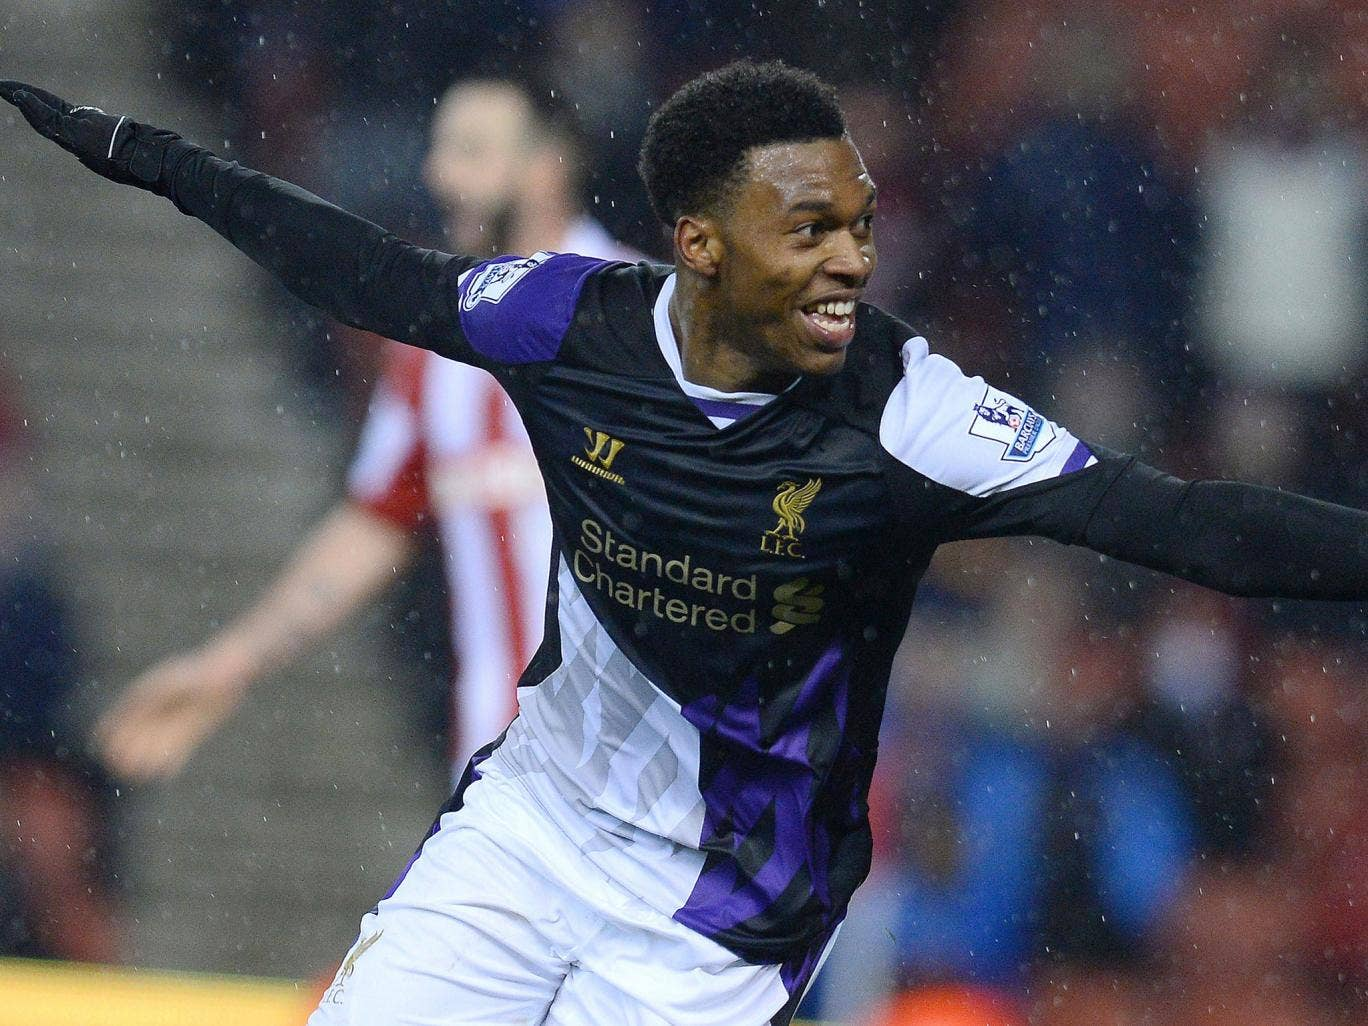 Liverpool striker Daniel Sturridge celebrates after scoring their fifth goal in the 5-3 victory over Stoke City